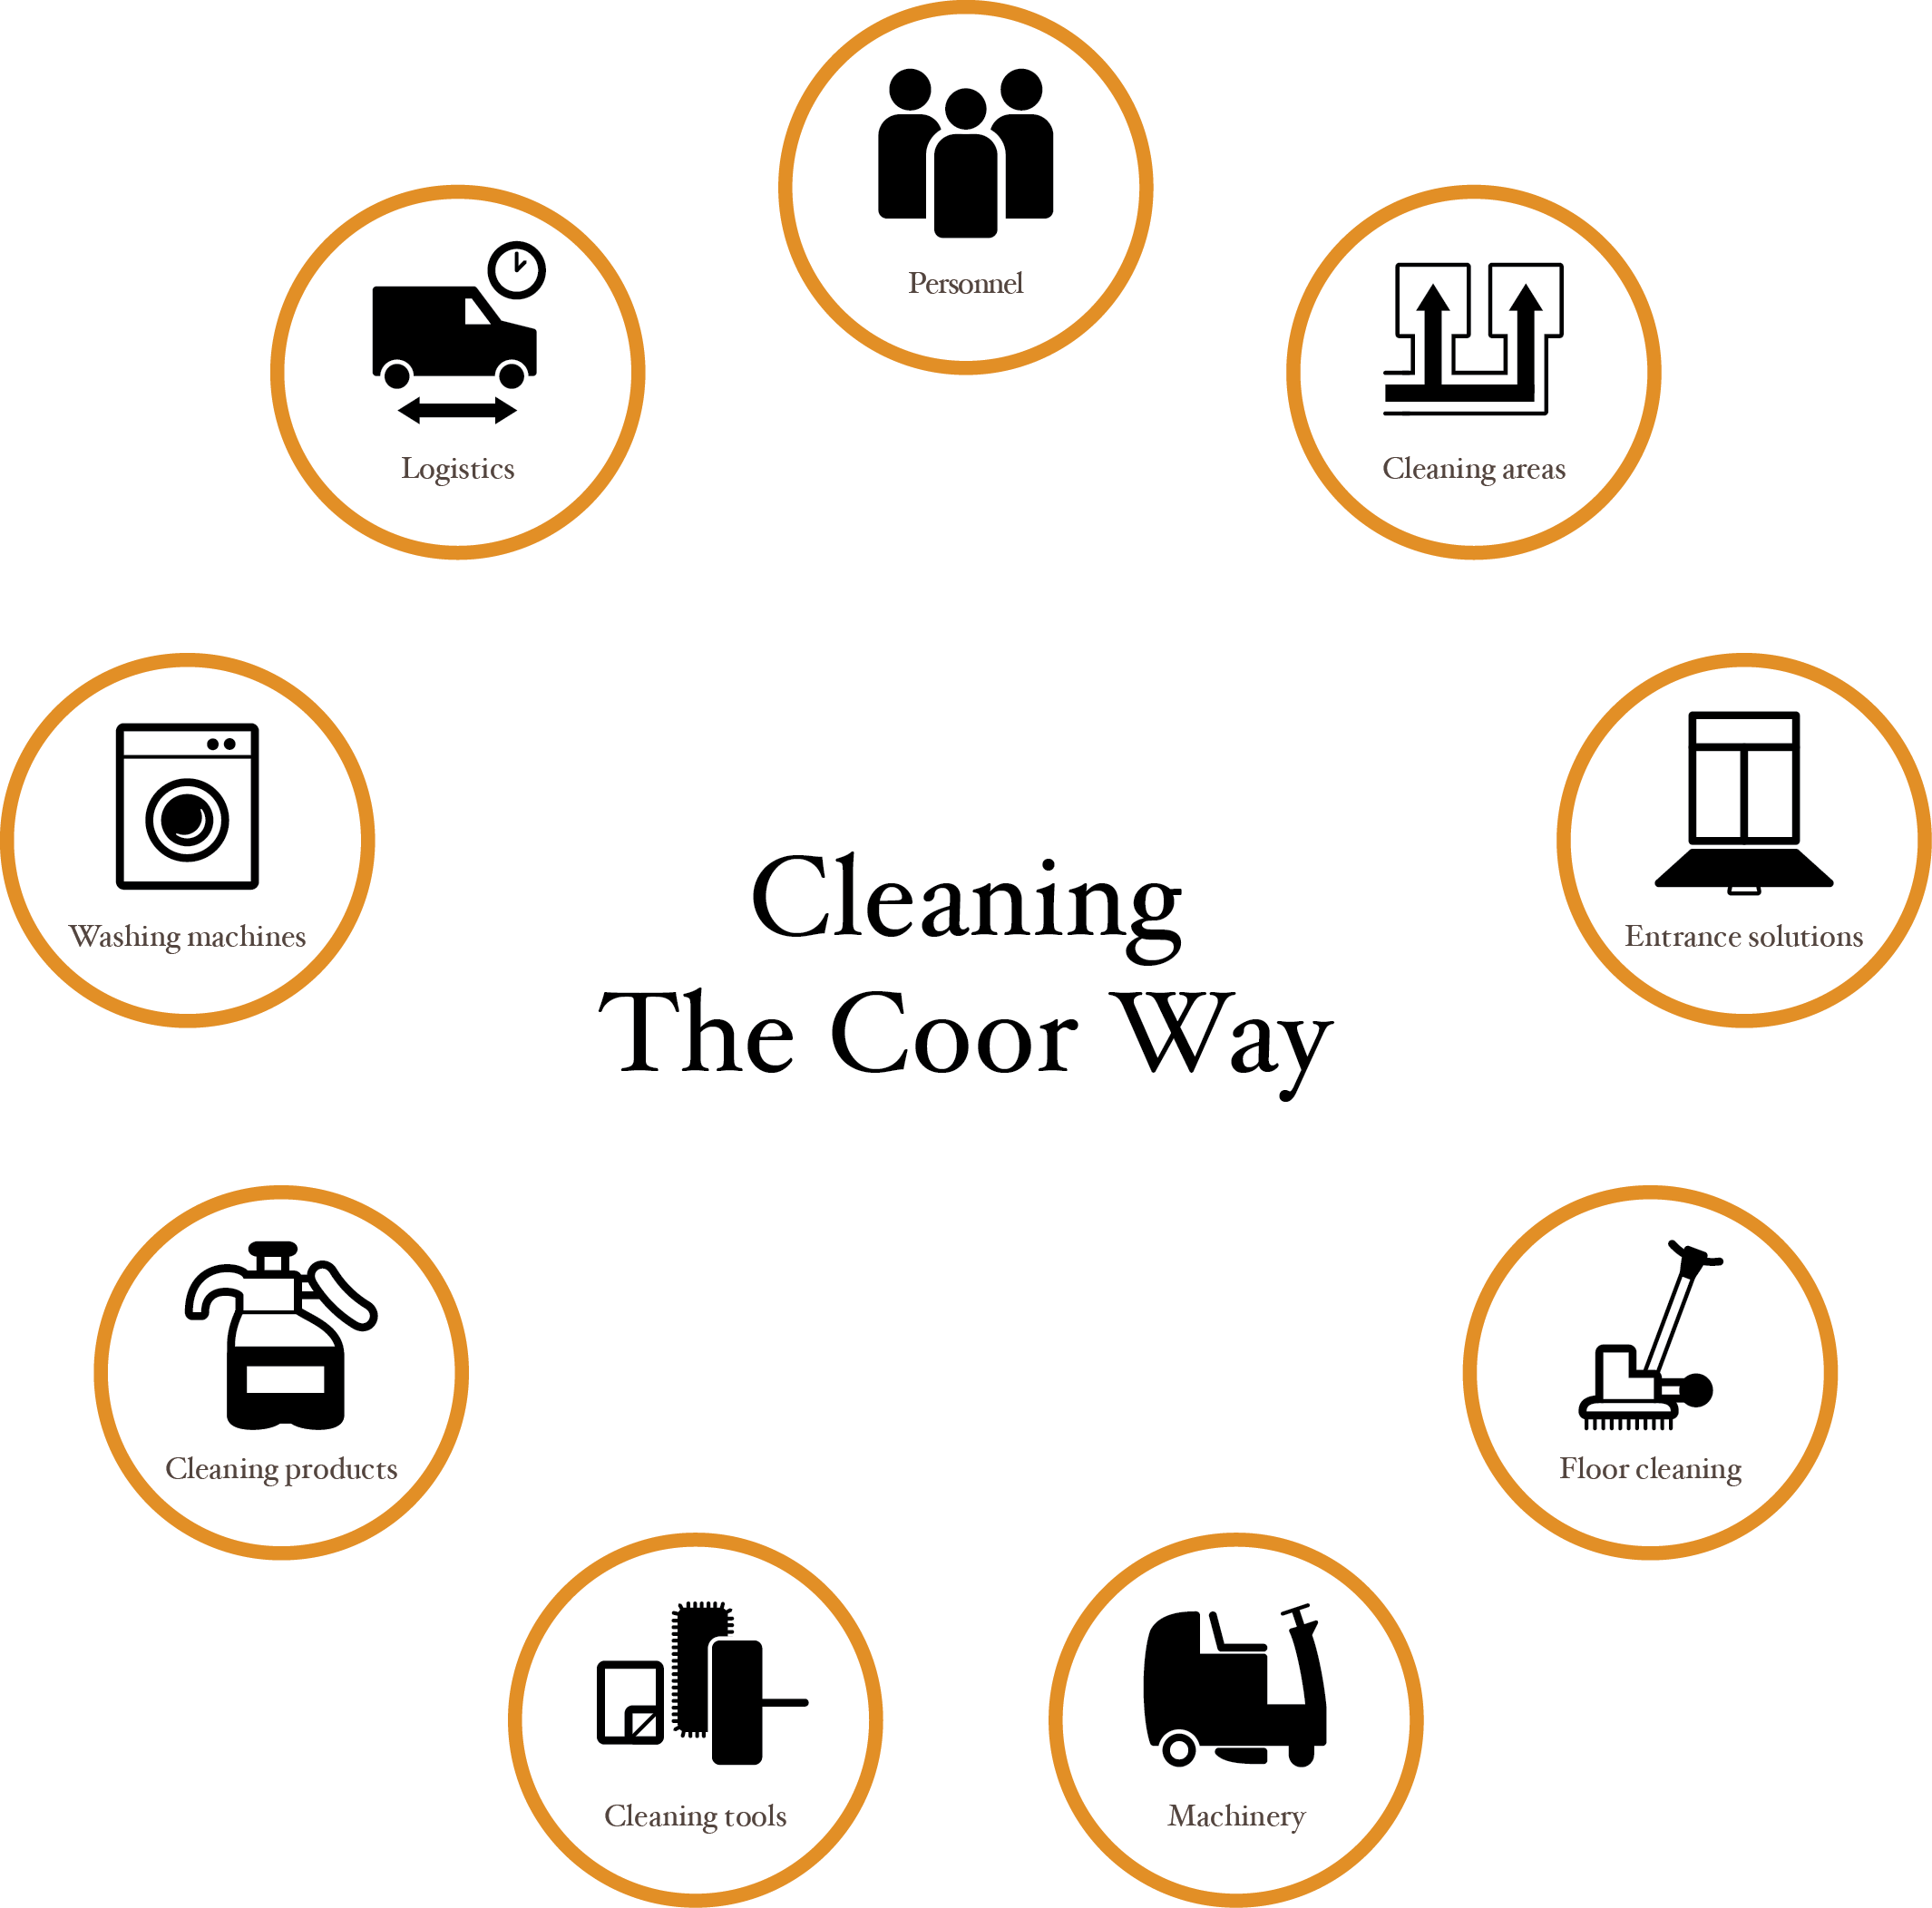 Cleaning, Coor